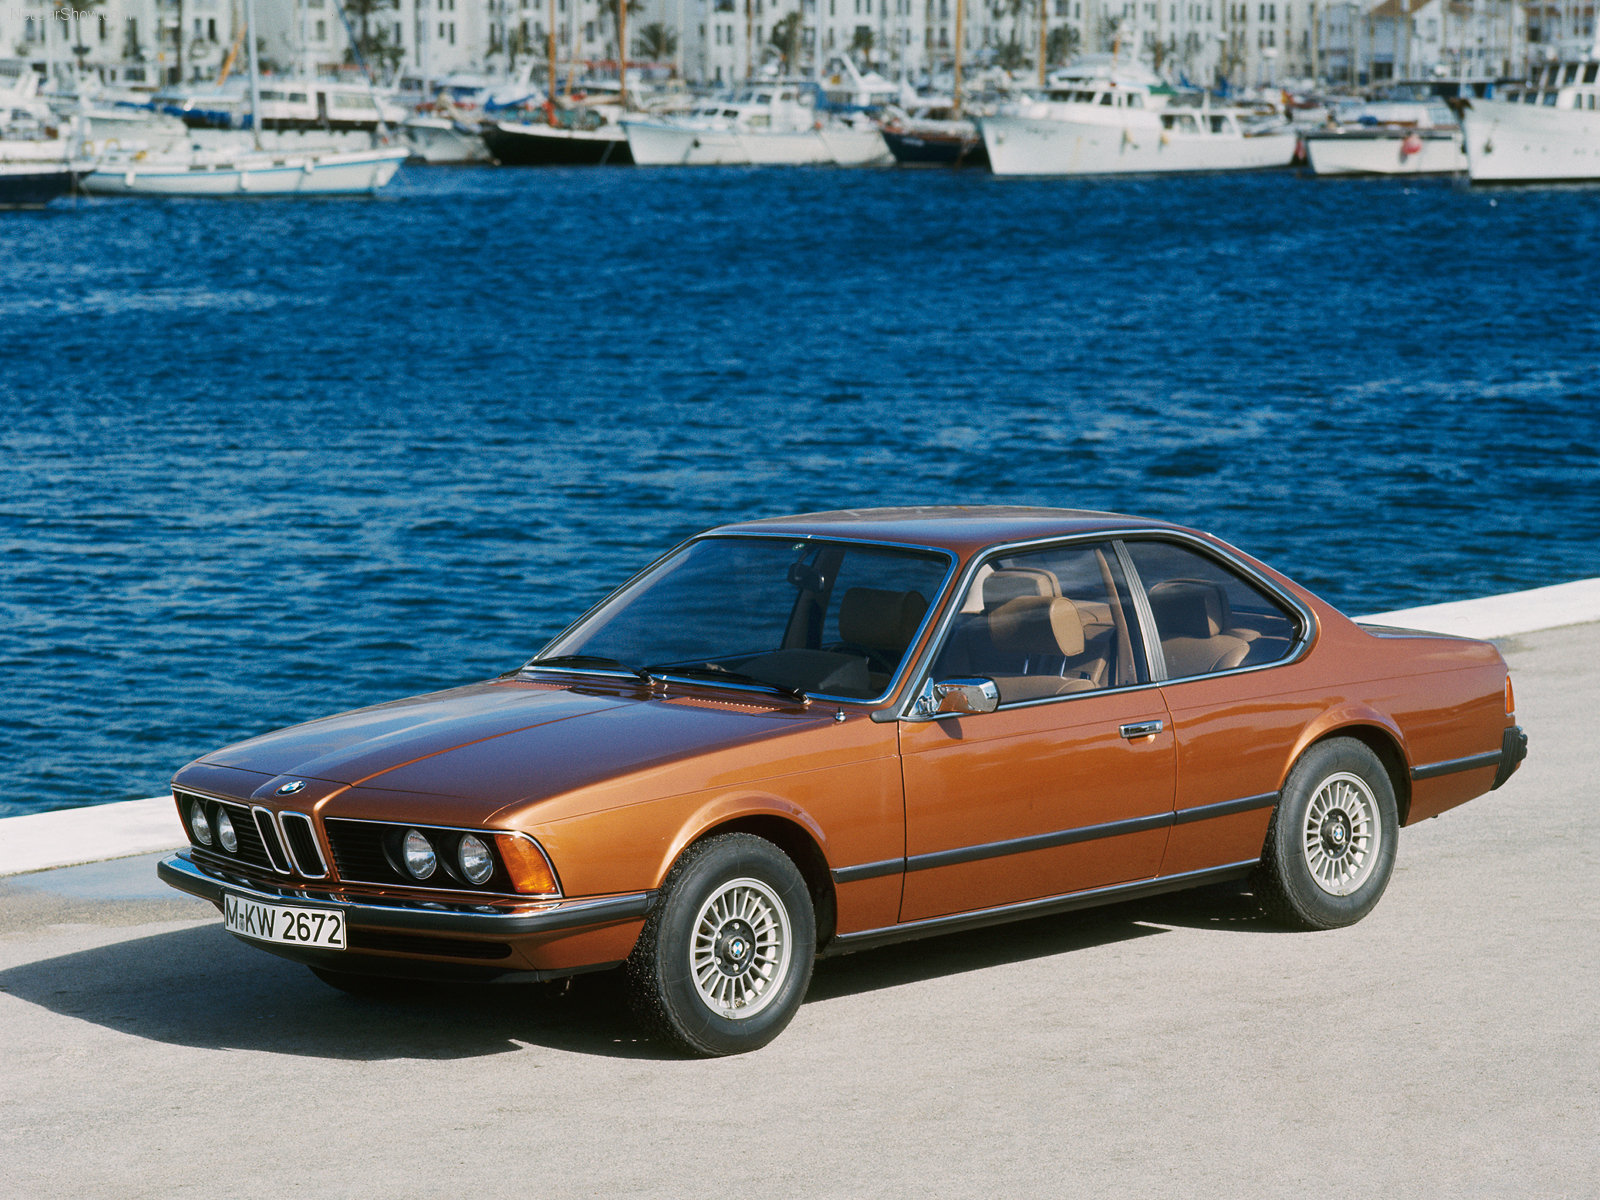 BMW 630CS 1976 1600x1200 wallpaper 01